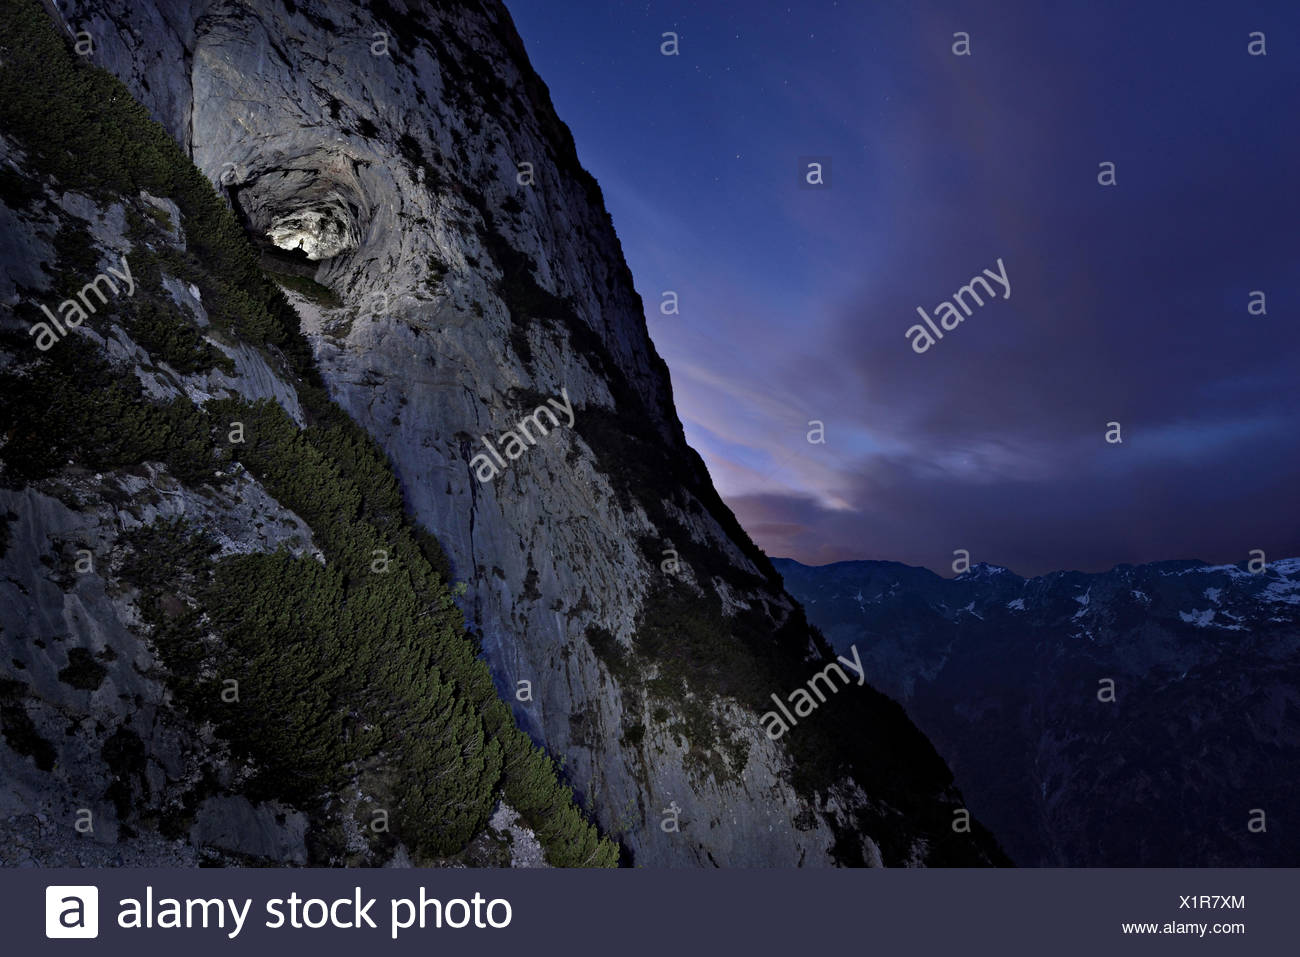 The entrance of Eisriesenwelt Eishoehle with the Austrian Alps in the distance. - Stock Image